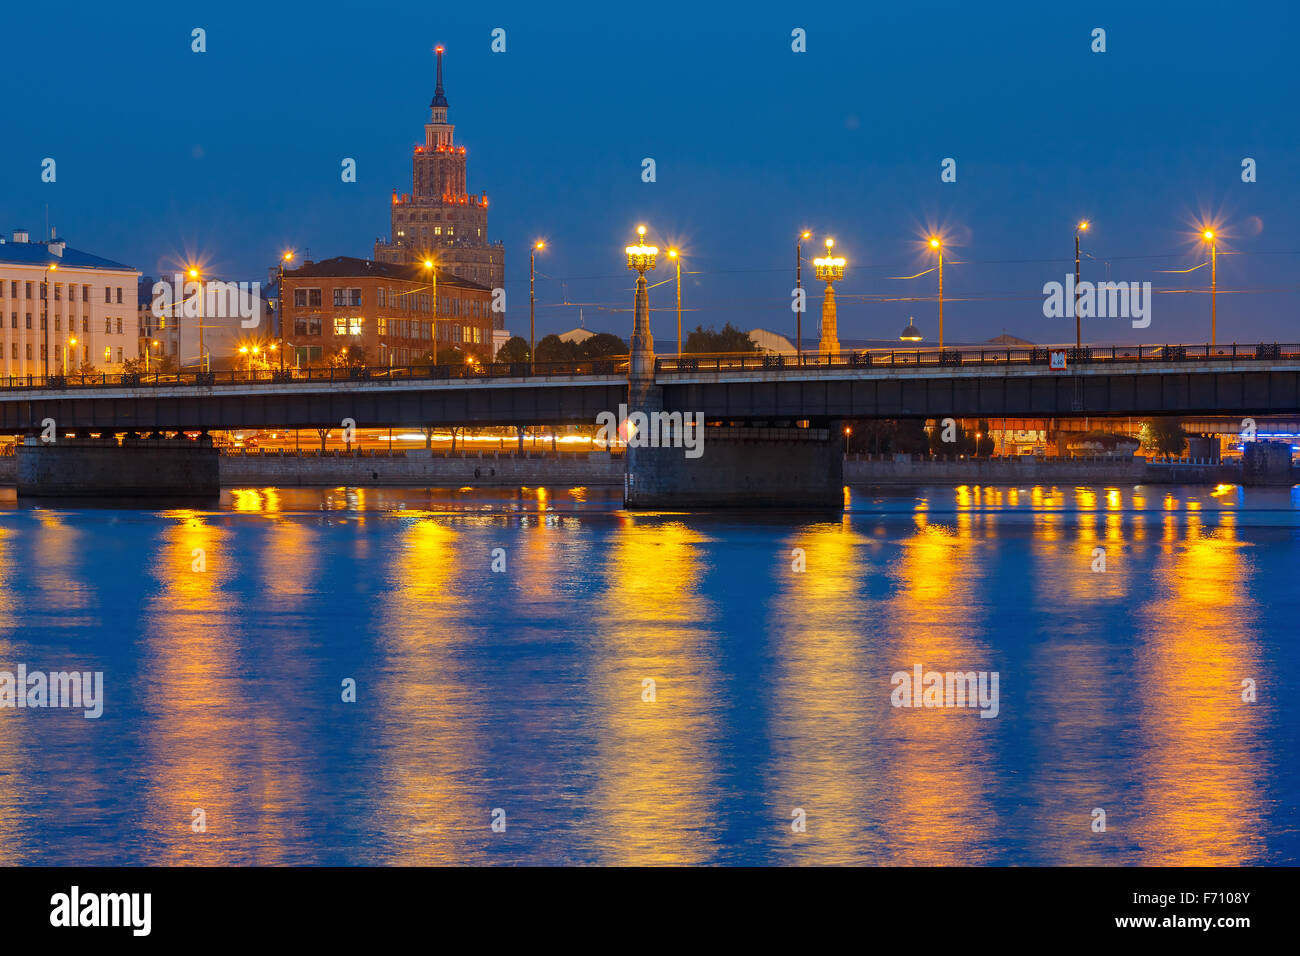 Latvian Academy of Sciences at night, Riga - Stock Image